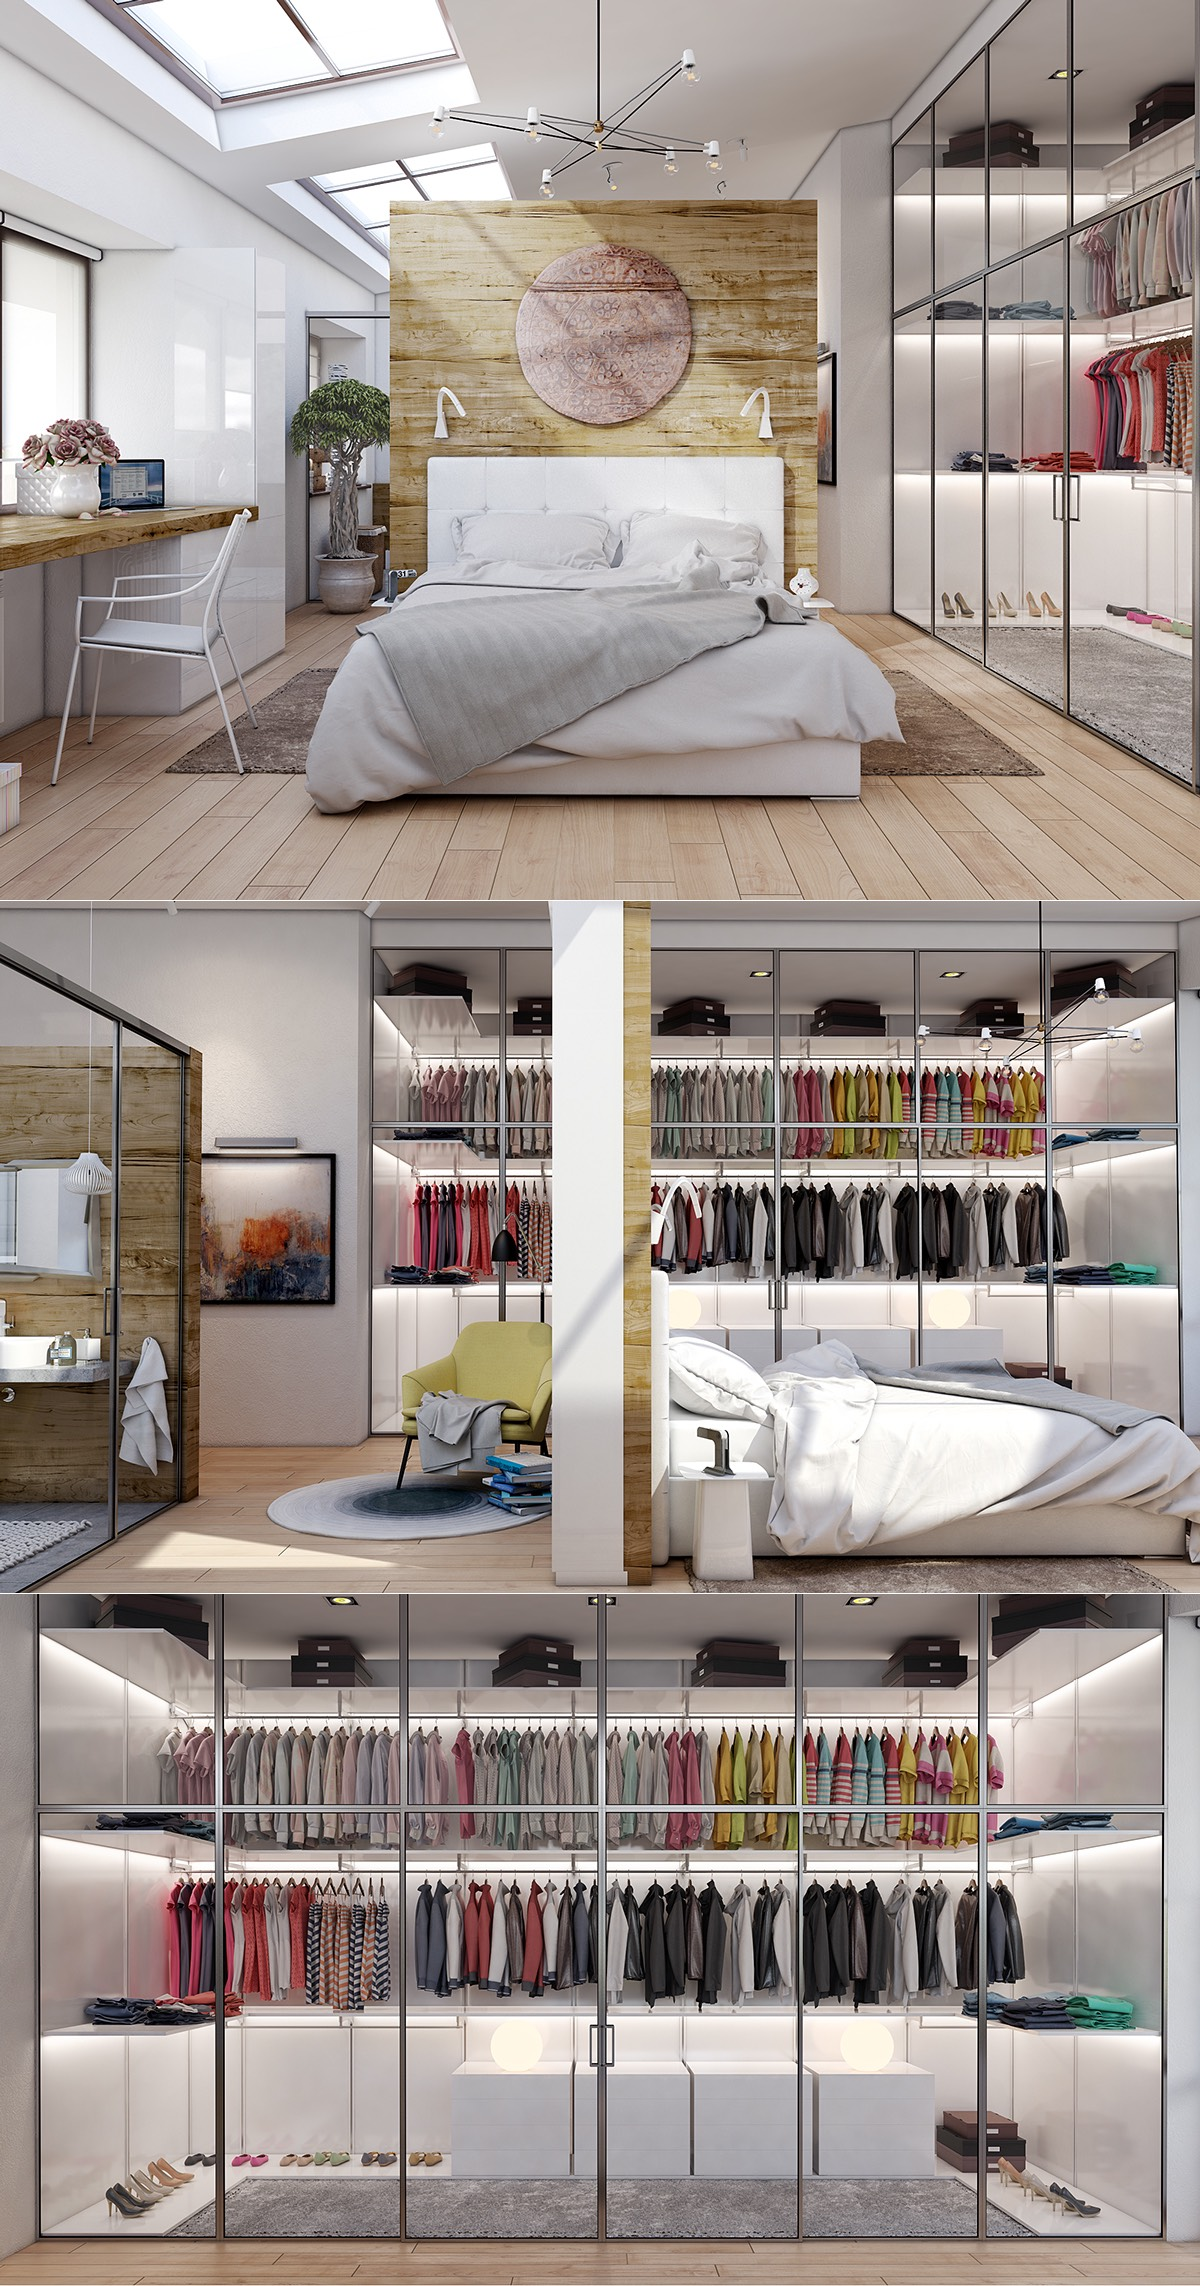 Bedroom Walk In Wardrobe Inspiration - 20 beautiful examples of bedrooms with attached wardrobes